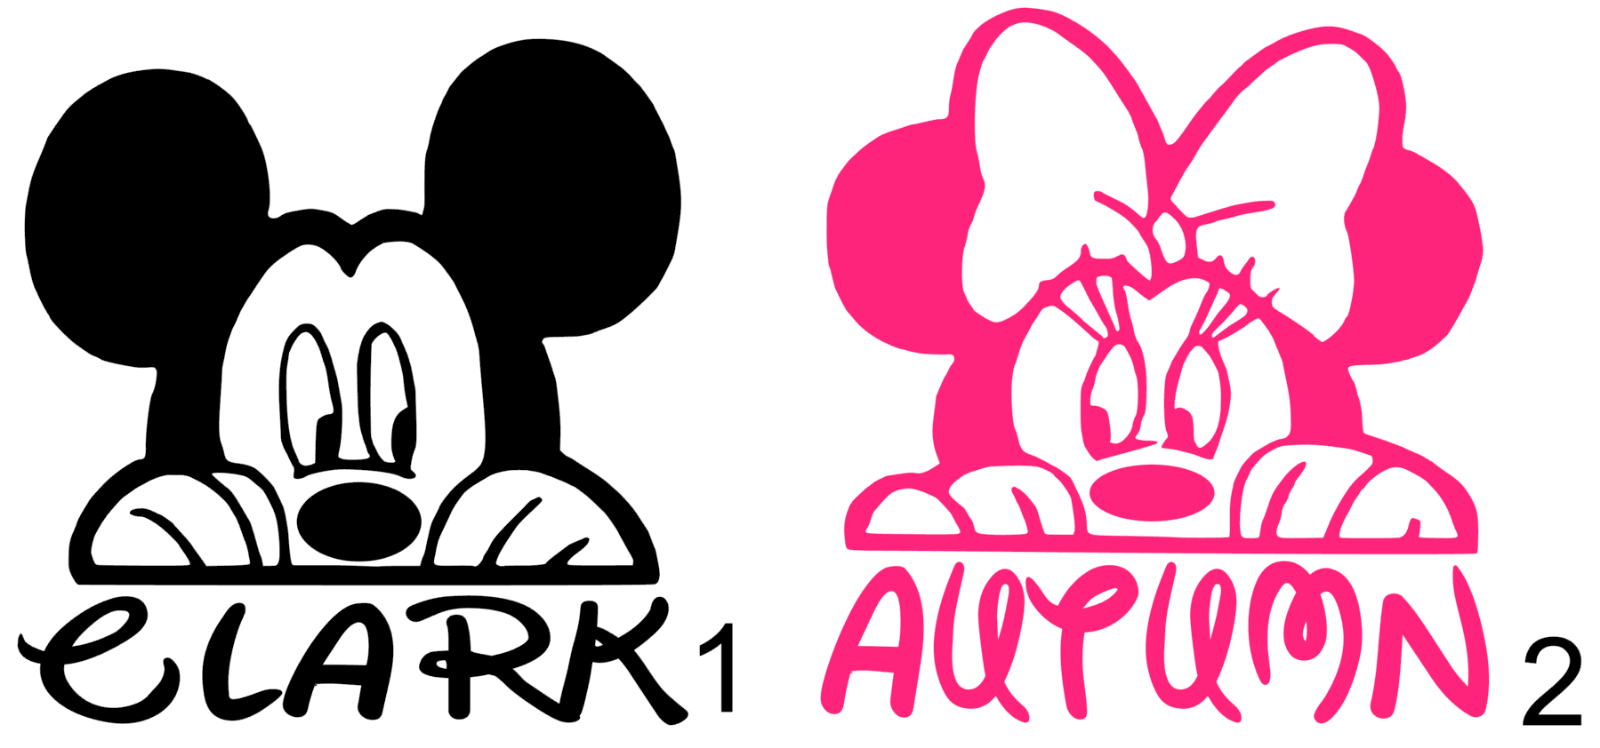 Home Decoration - Mickey mouse / Minnie Mouse Personalized name Vinyl Decal B Approx. 3inchx3inch